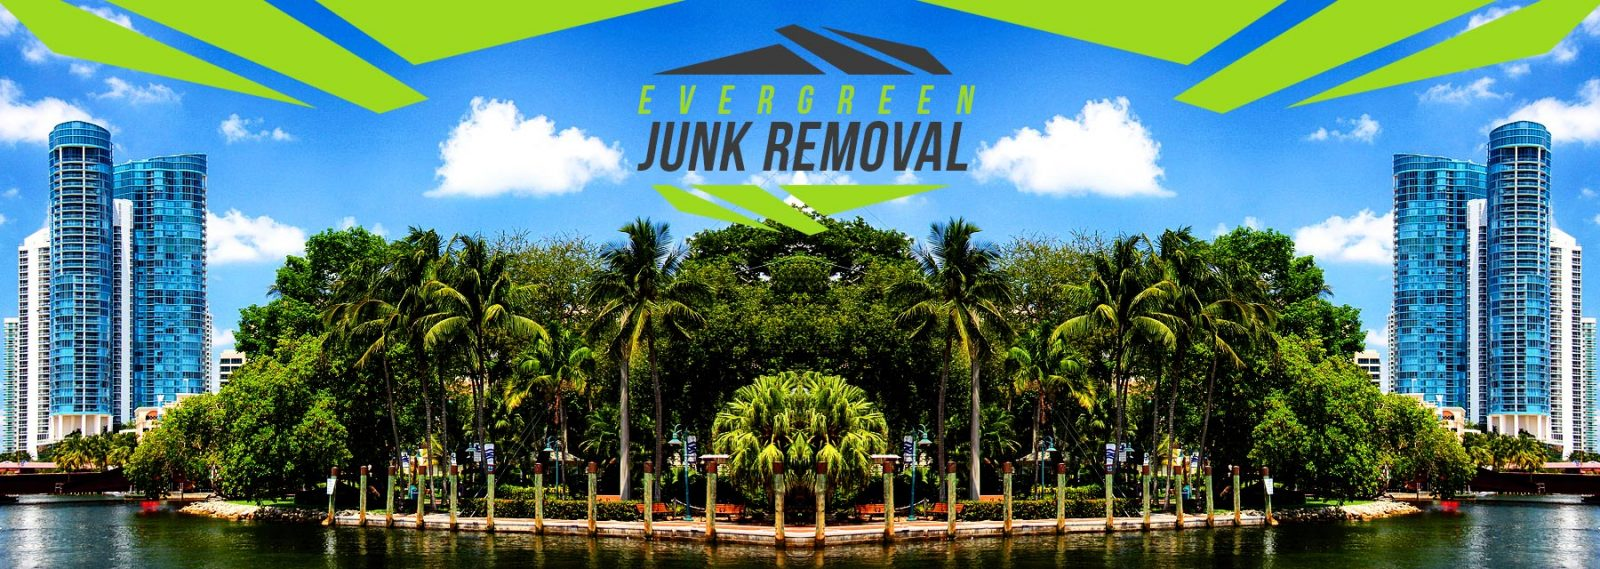 North Miami Hot Tub Removal Company